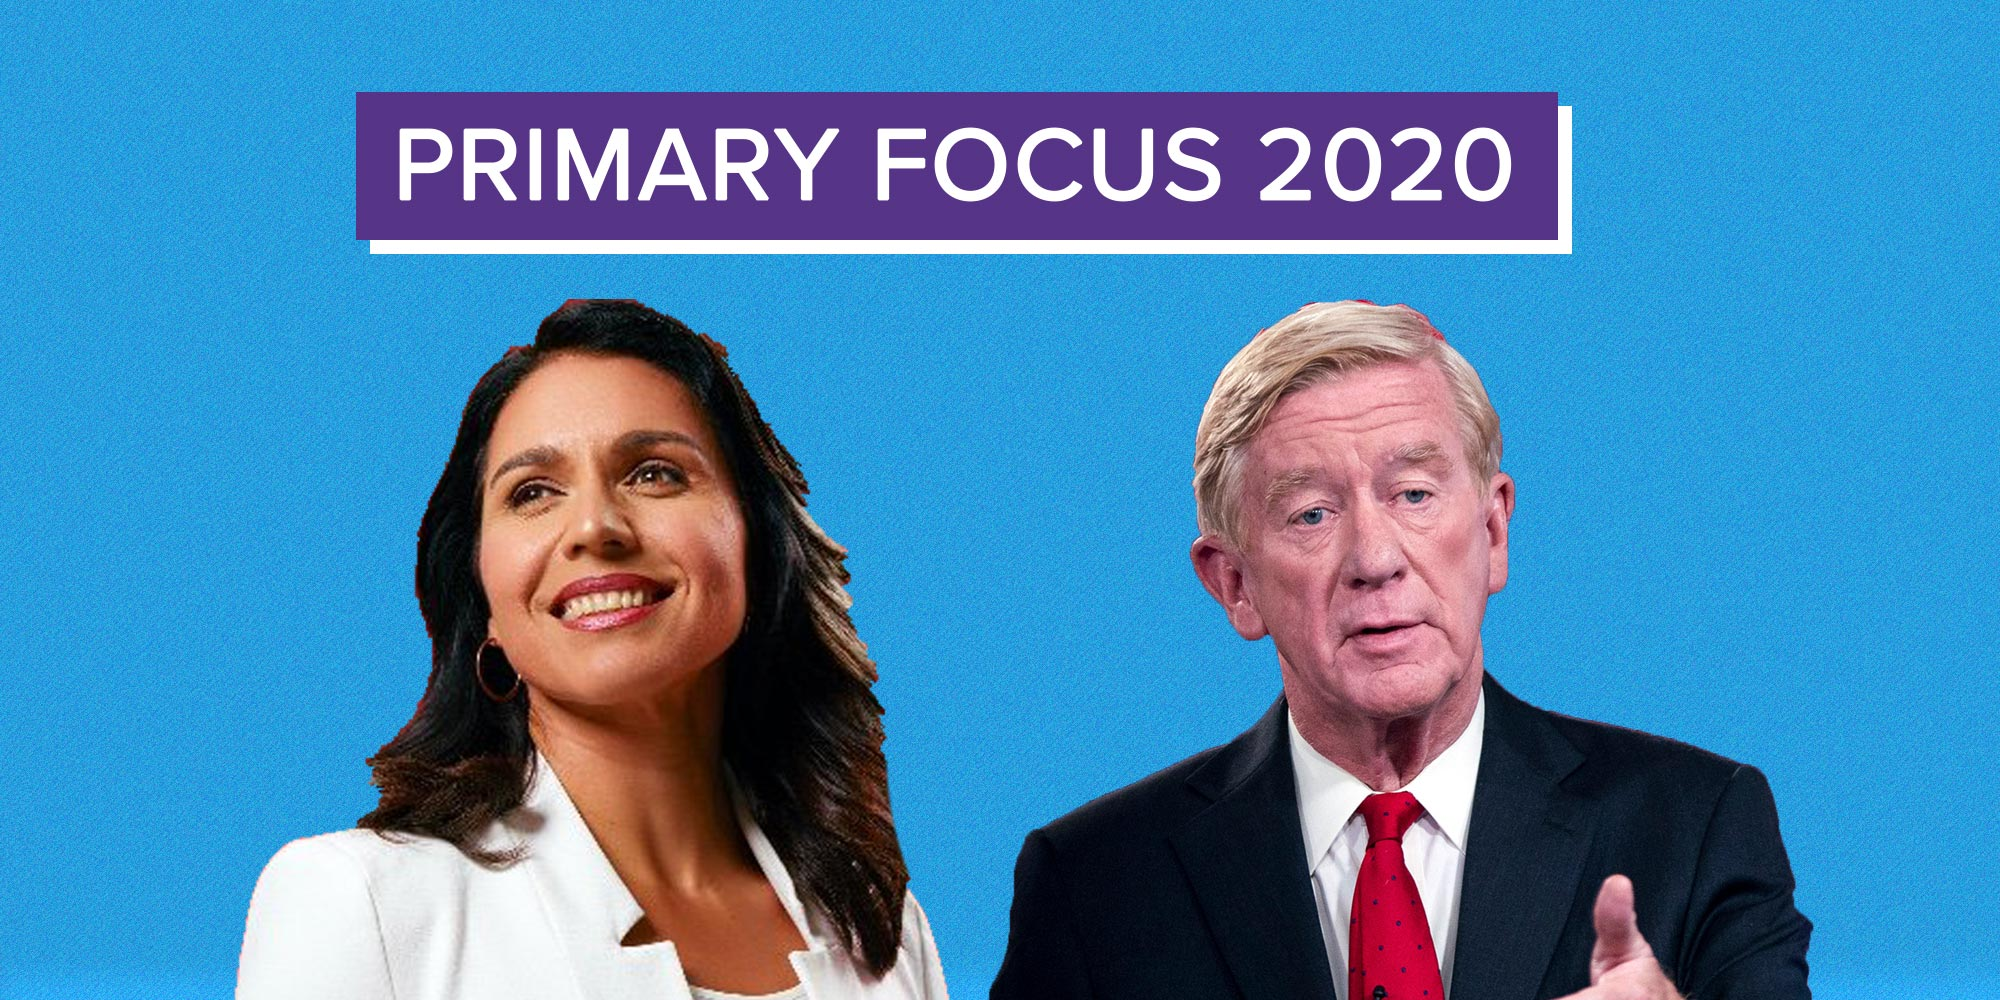 Gabbard and Weld Presidential Campaigns Highlighted Bipartisan Support for RCV